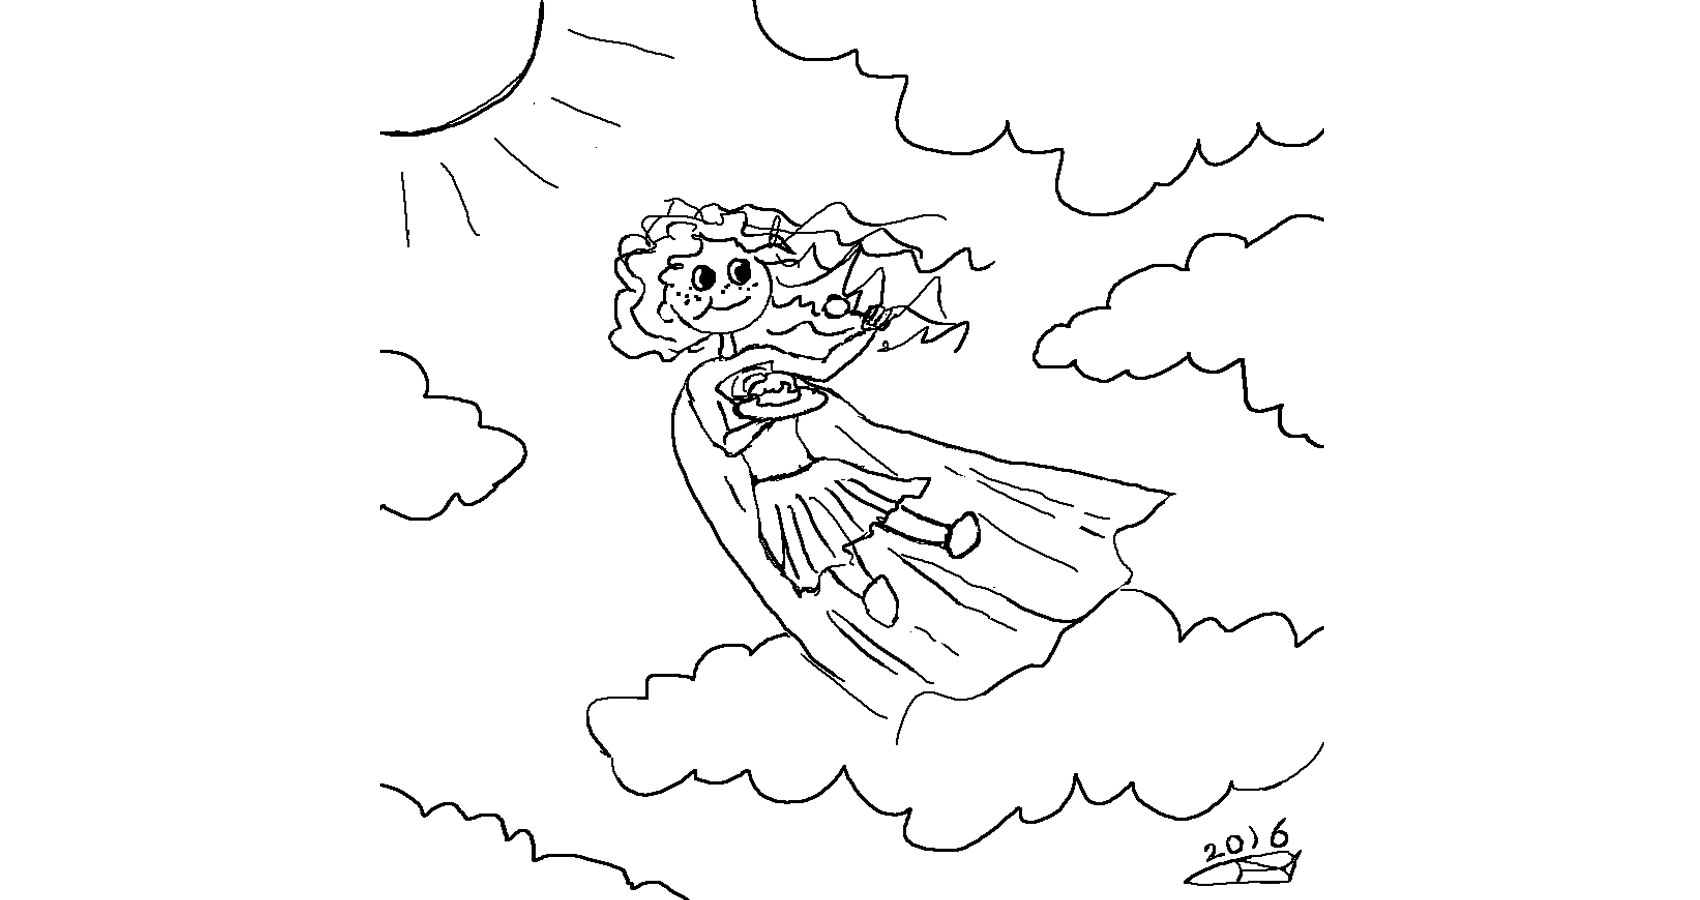 Strawberry Shortcake Supergirl by Robyn MacKinnon at Spillwords.com